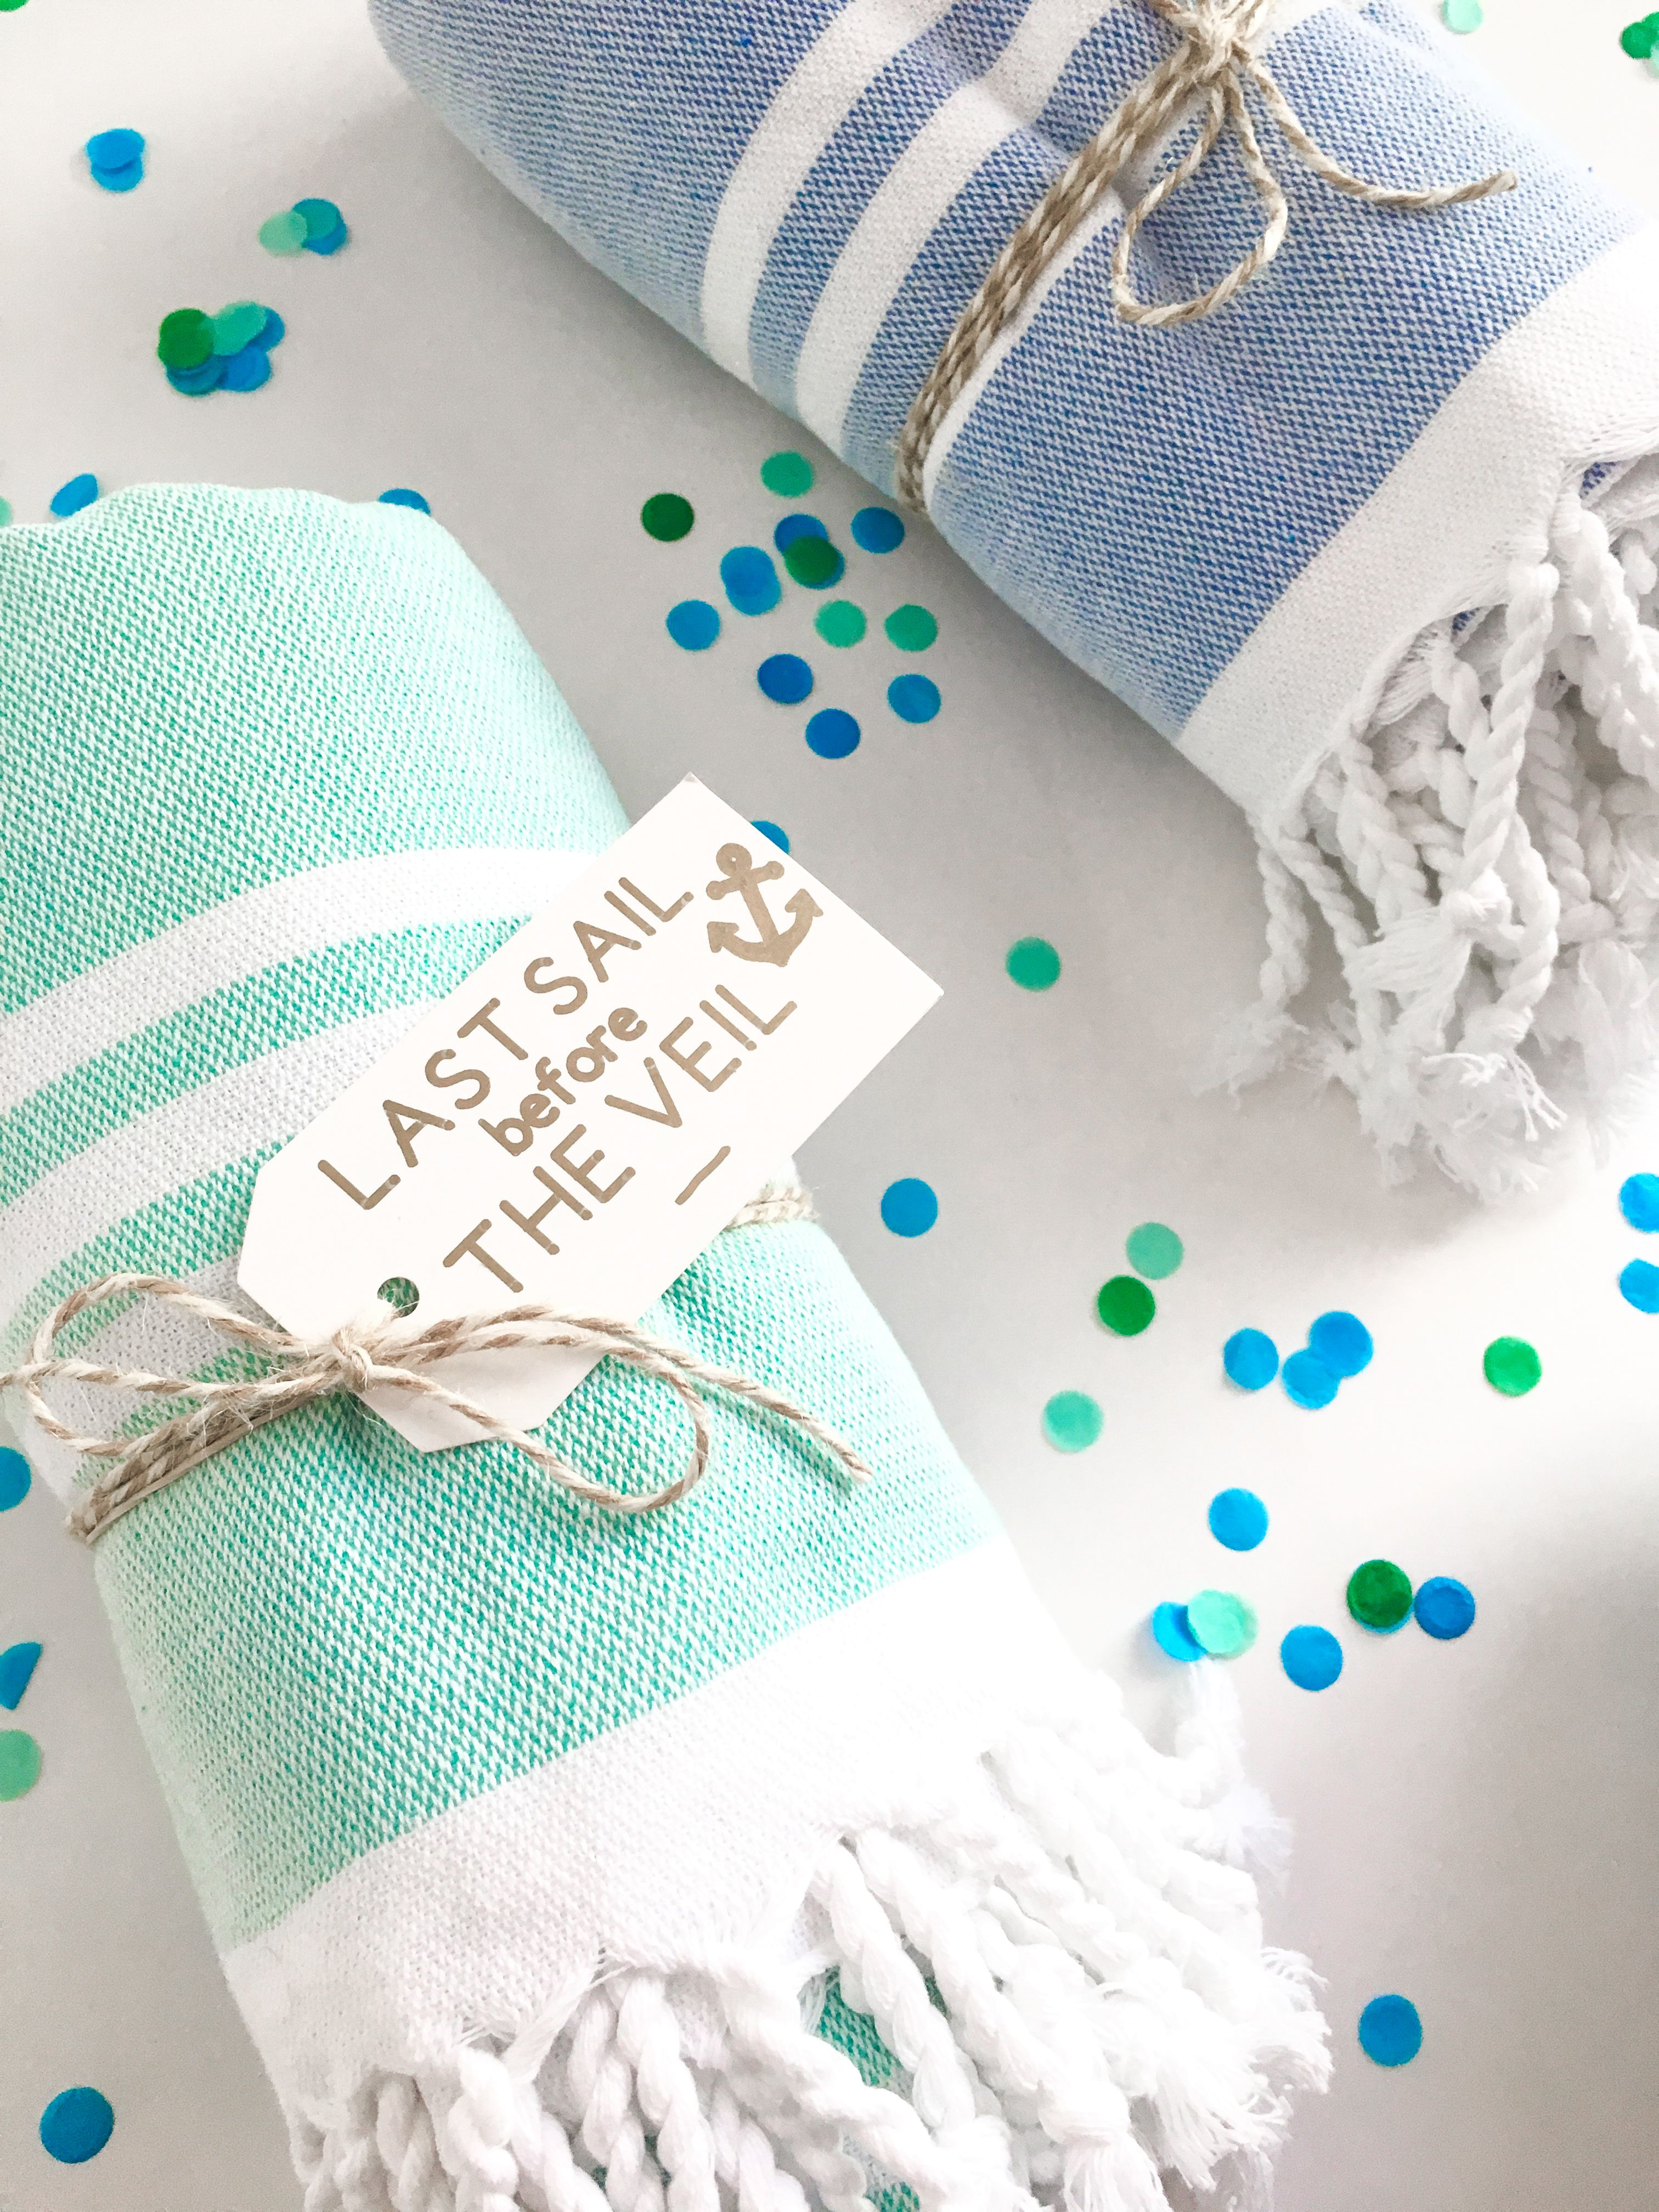 Emejing Beach Towel Wedding Favors Pictures - Styles & Ideas 2018 ...